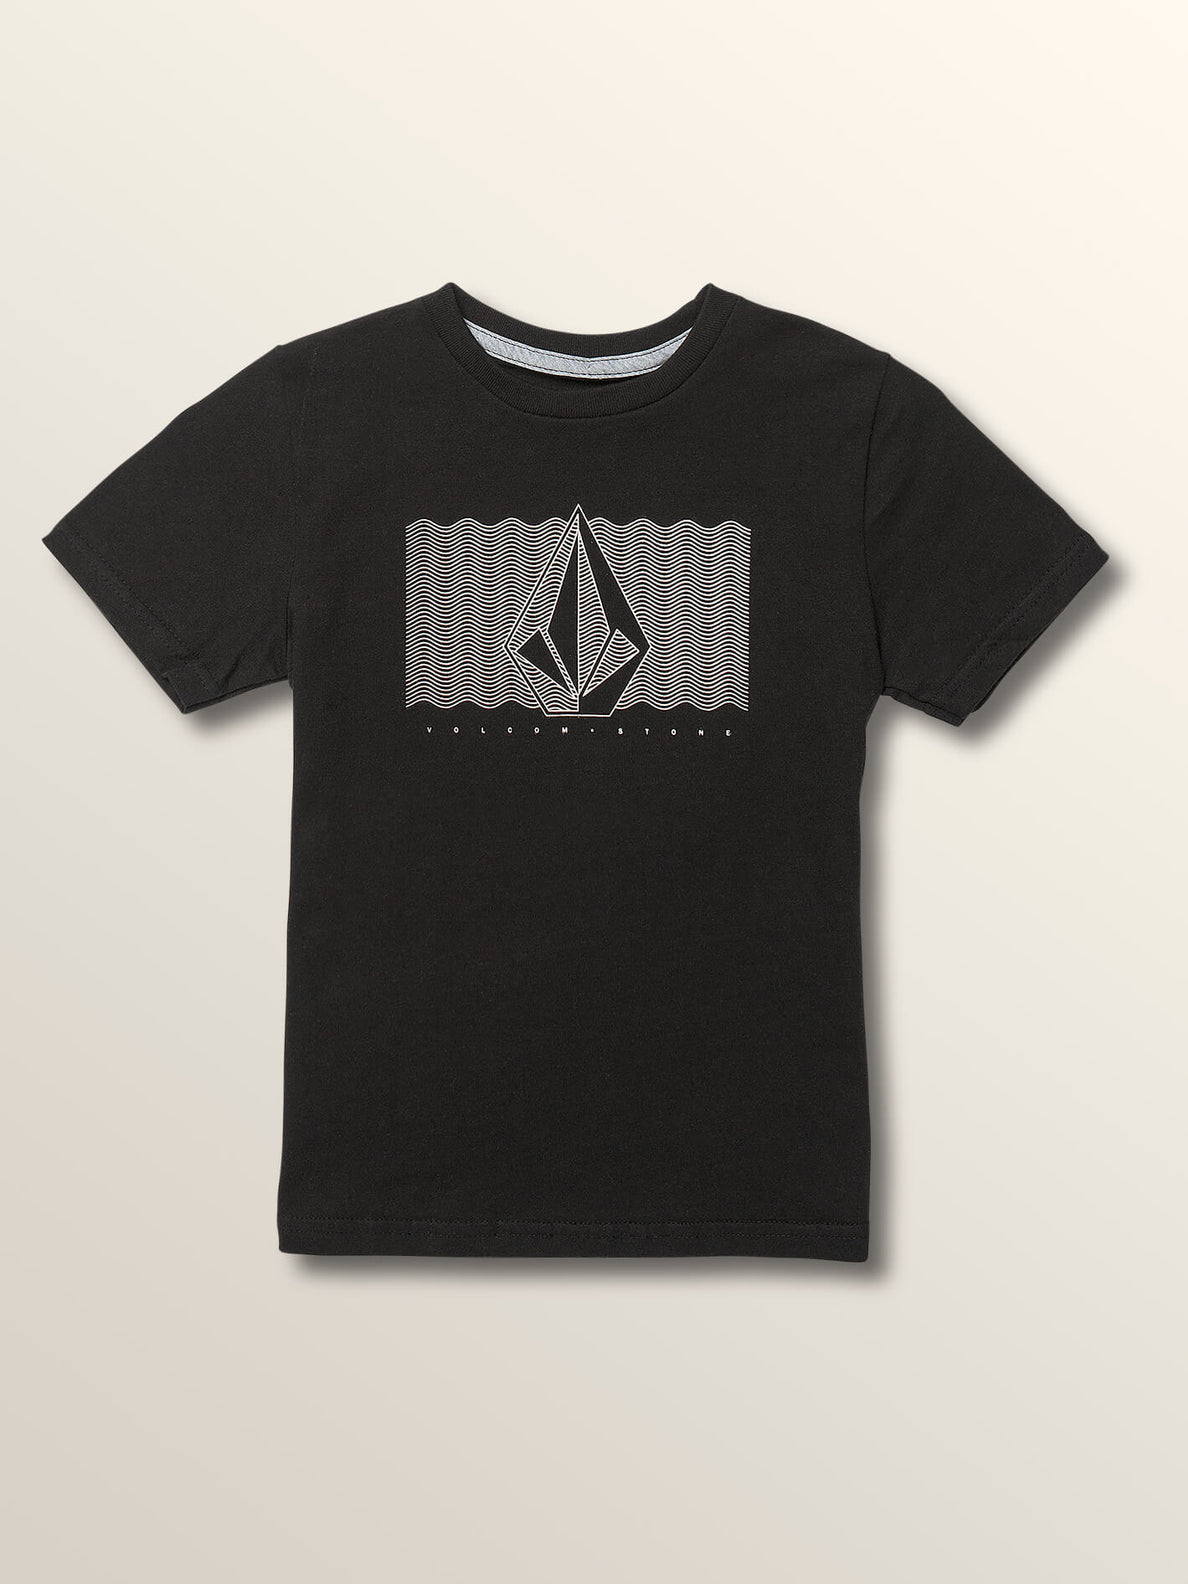 Little Boys Sound Waves Short Sleeve Tee In Black, Front View